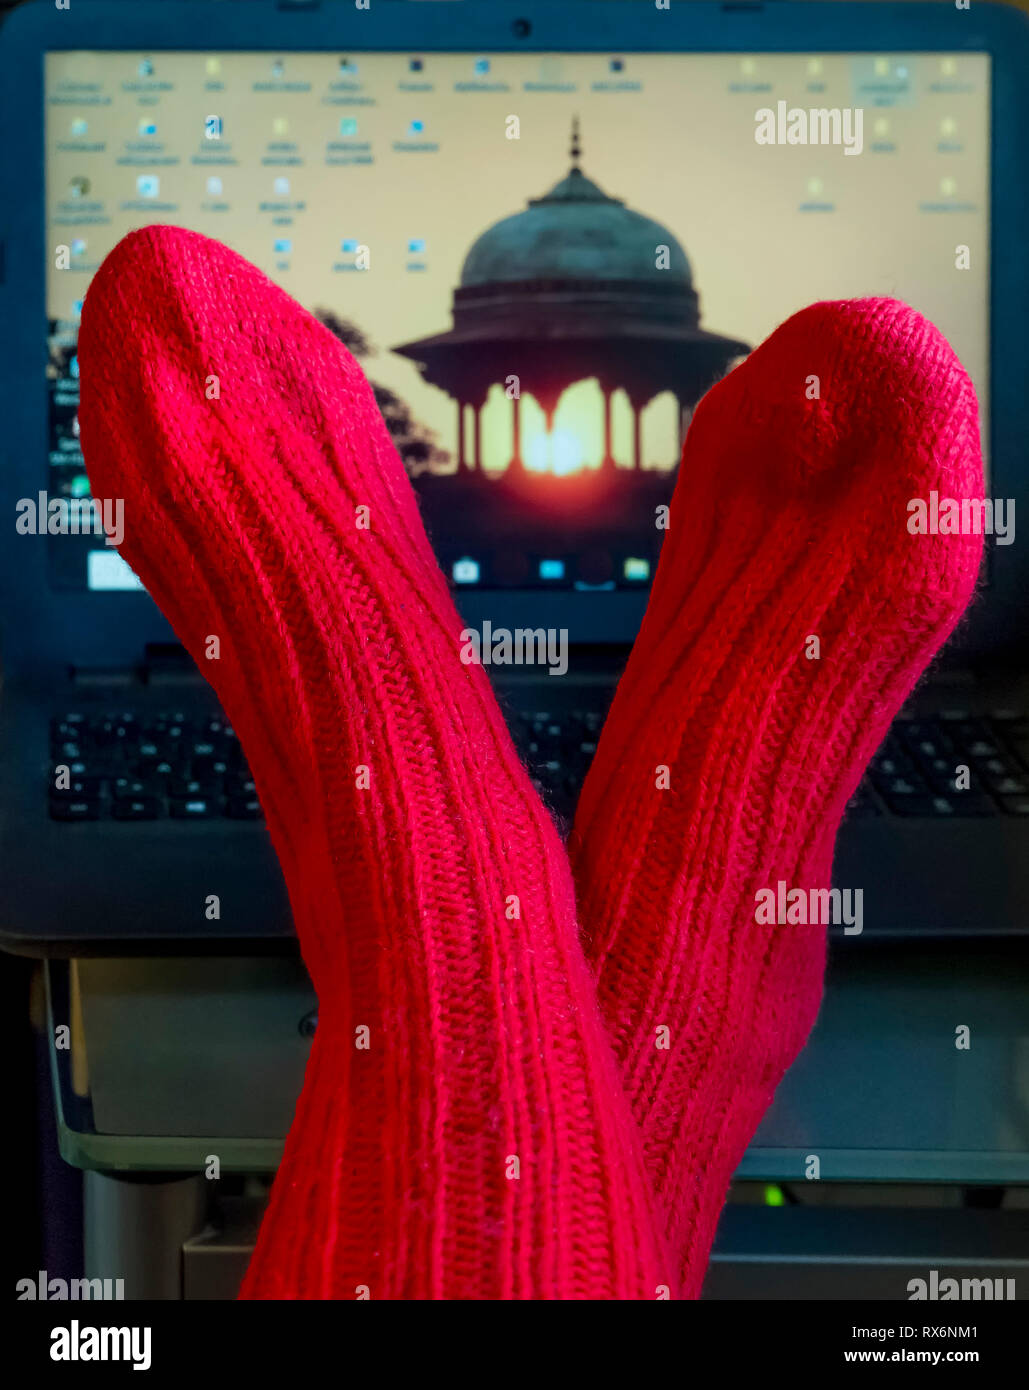 A woman's feet with red wool socks on a desk against an open laptop in the background - Stock Image